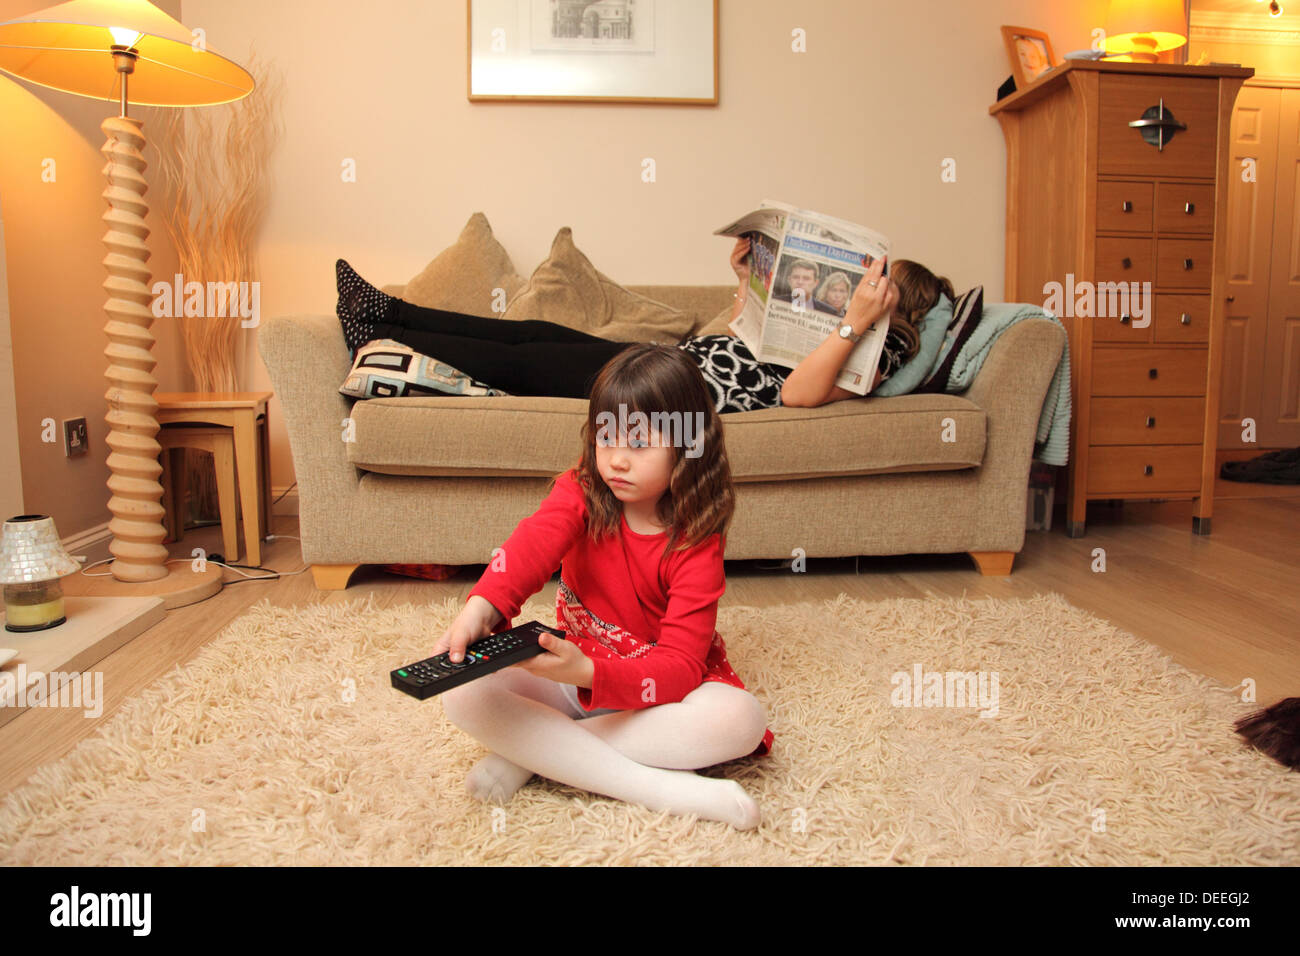 A young girl sits on the floor and operates the television while her mother ignores her, reading the paper whilst lying on a sofa. - Stock Image